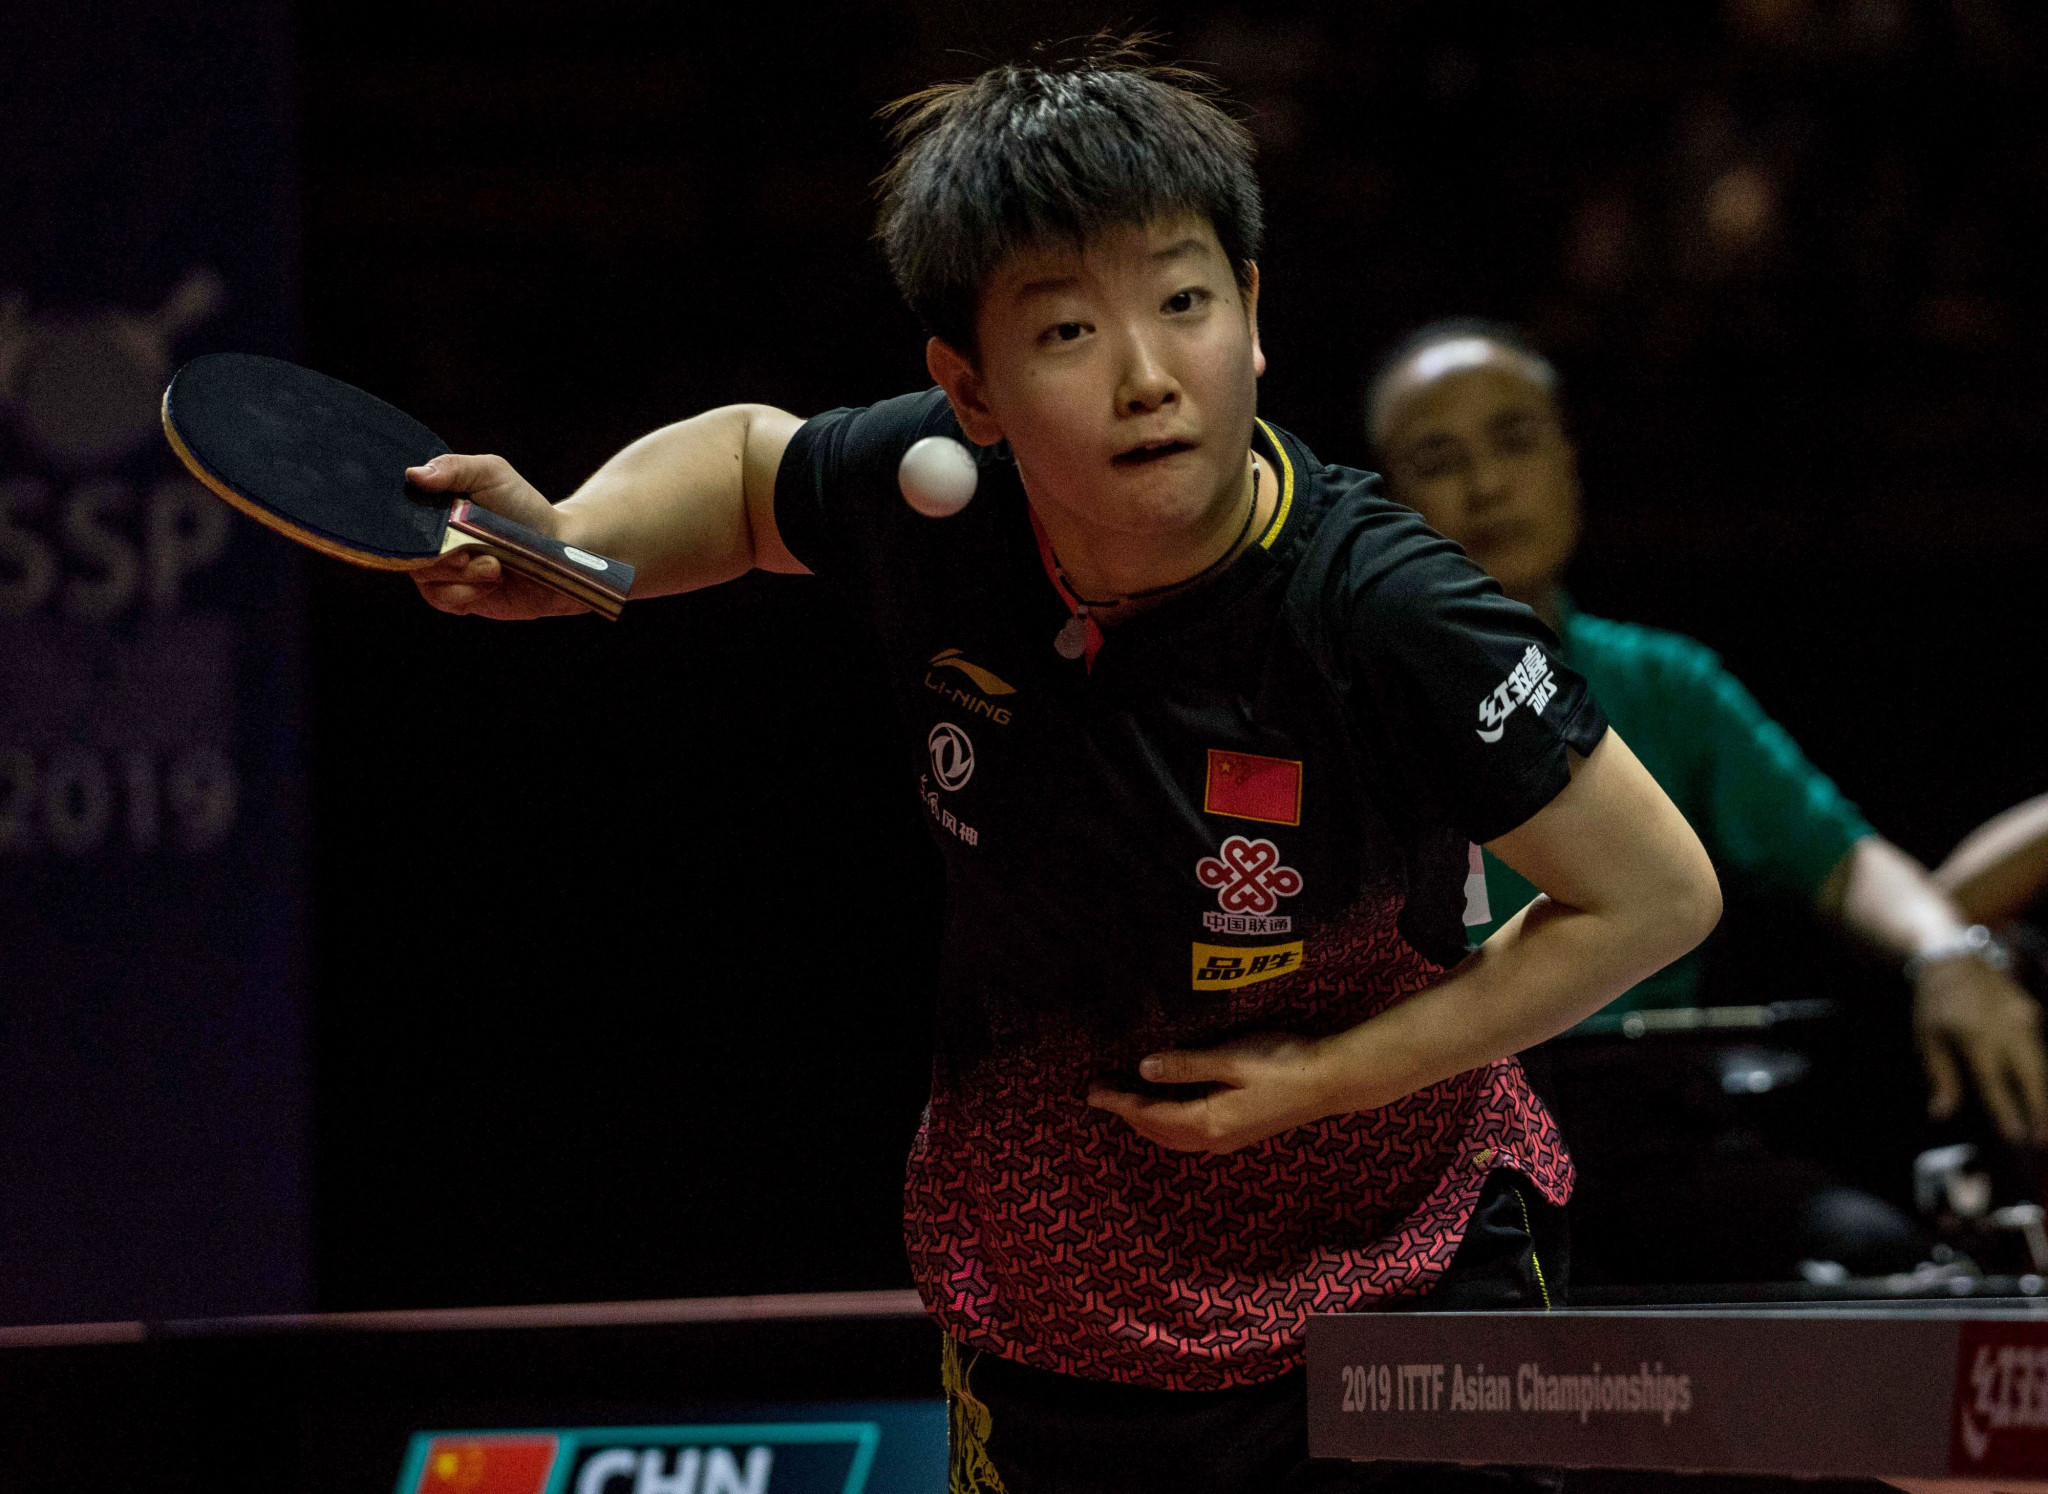 Sun Yingsha will look to strengthen her position at the top of the women's rankings ©Getty Images